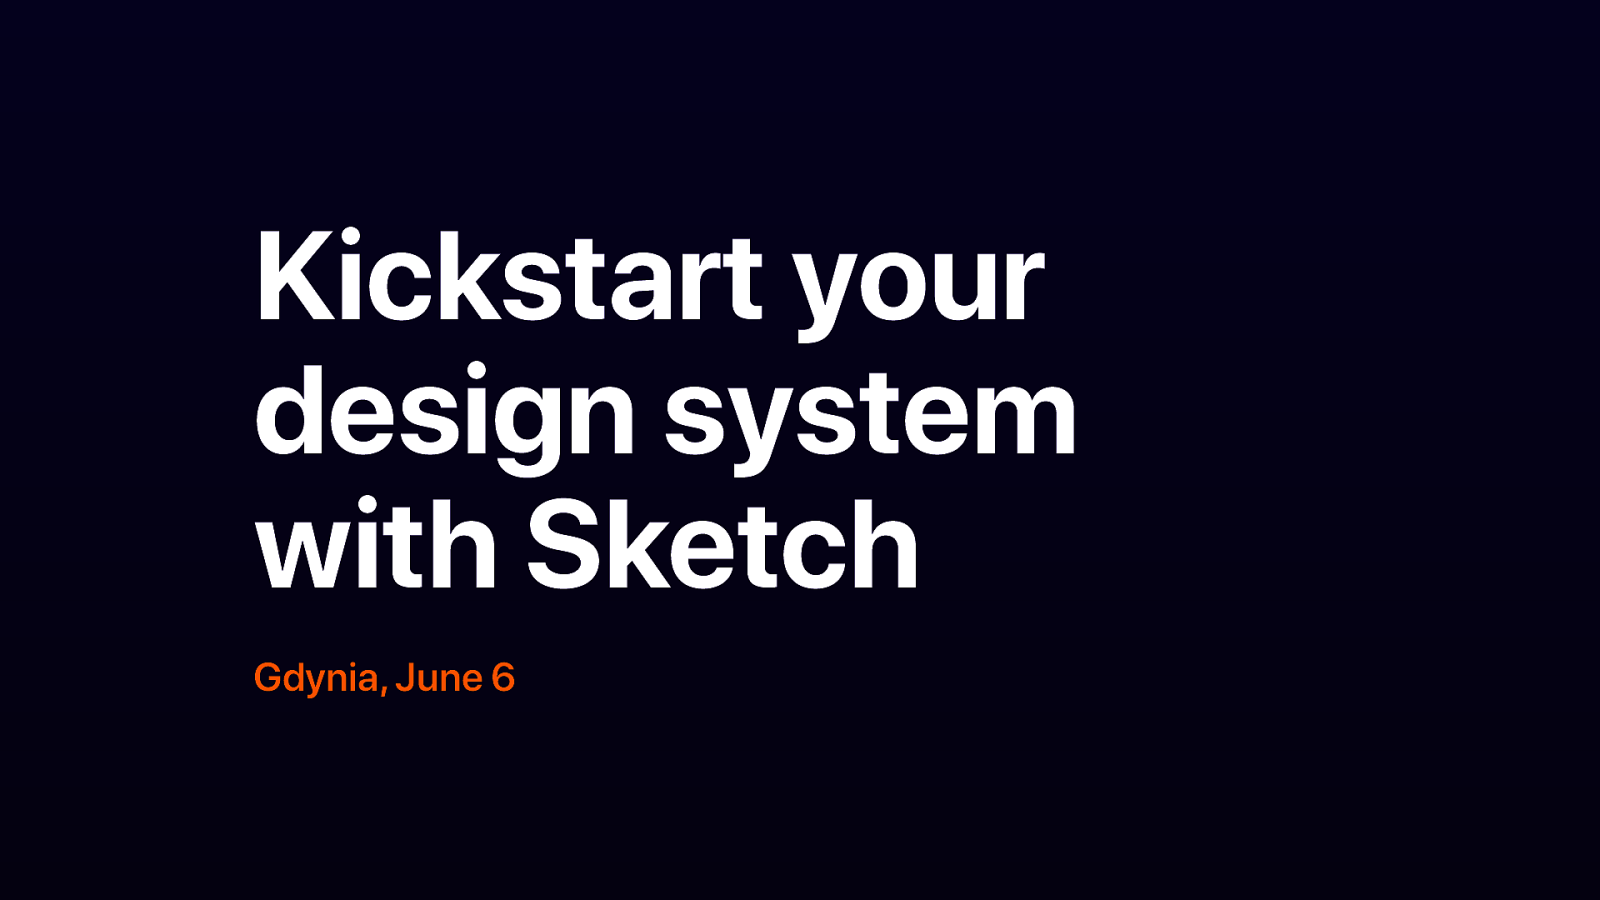 Kickstart your design system with Sketch